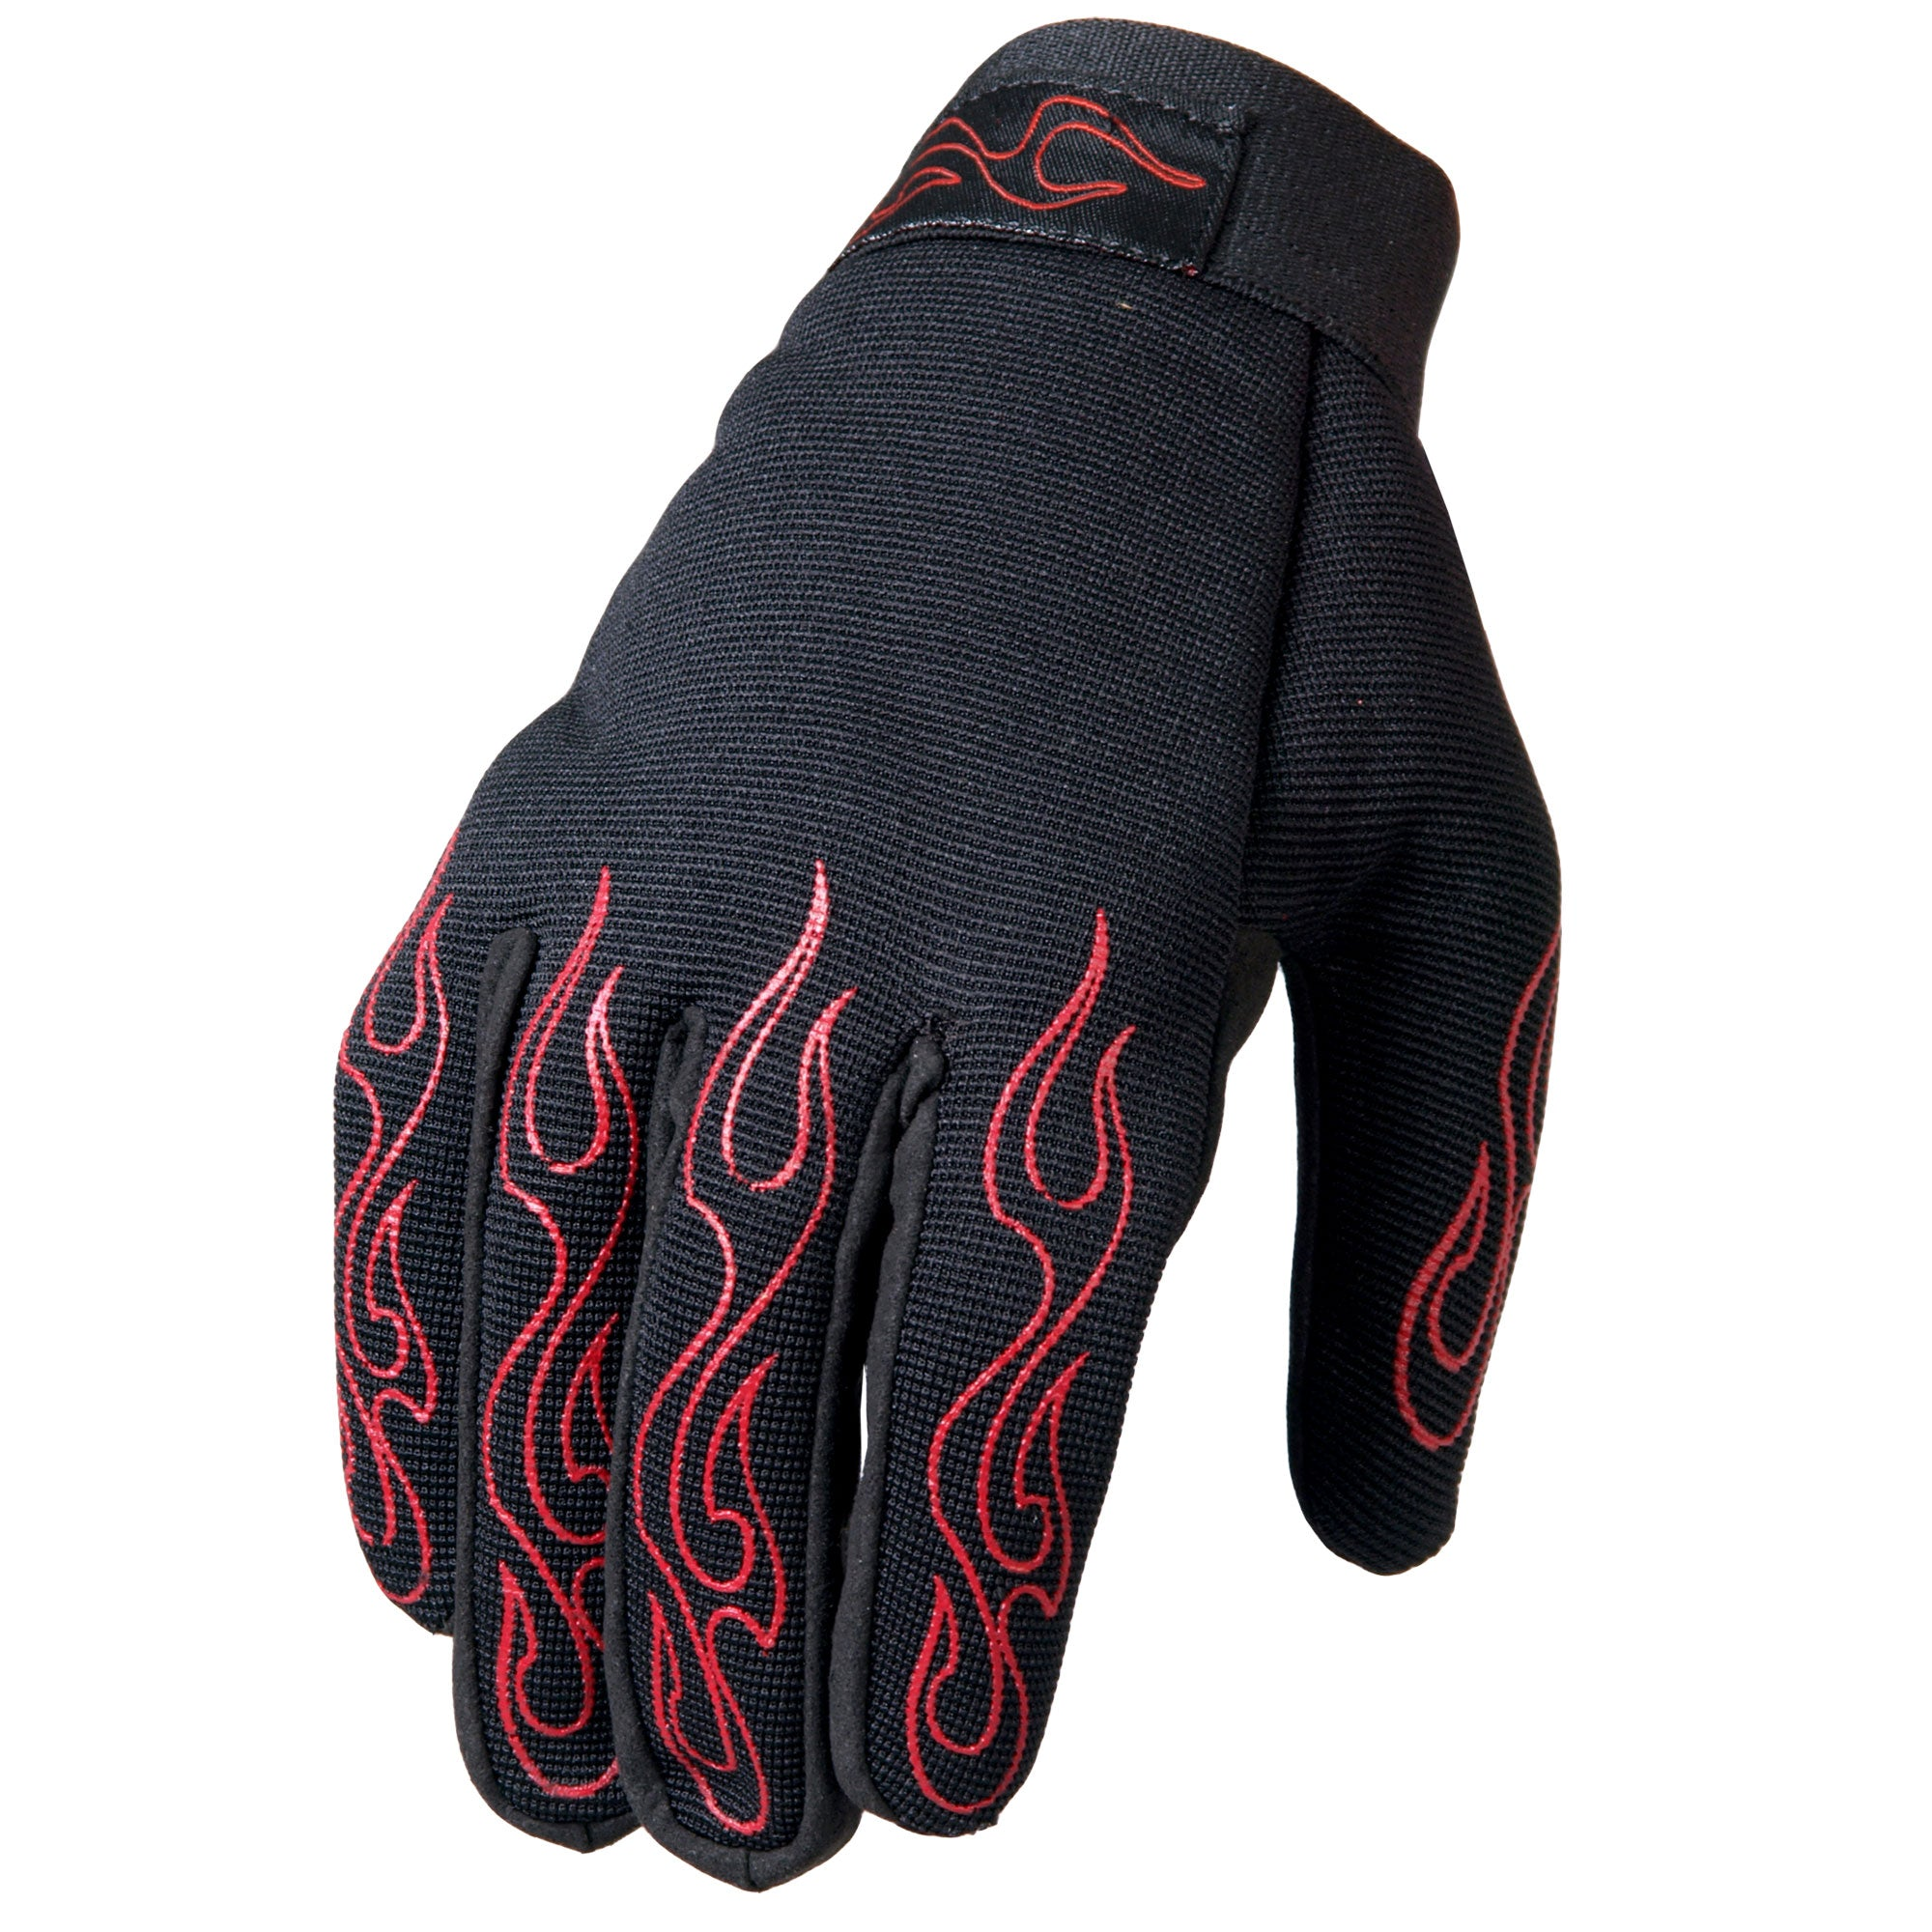 Hot Leathers GVM2002 Mechanic's Gloves with Red Flames